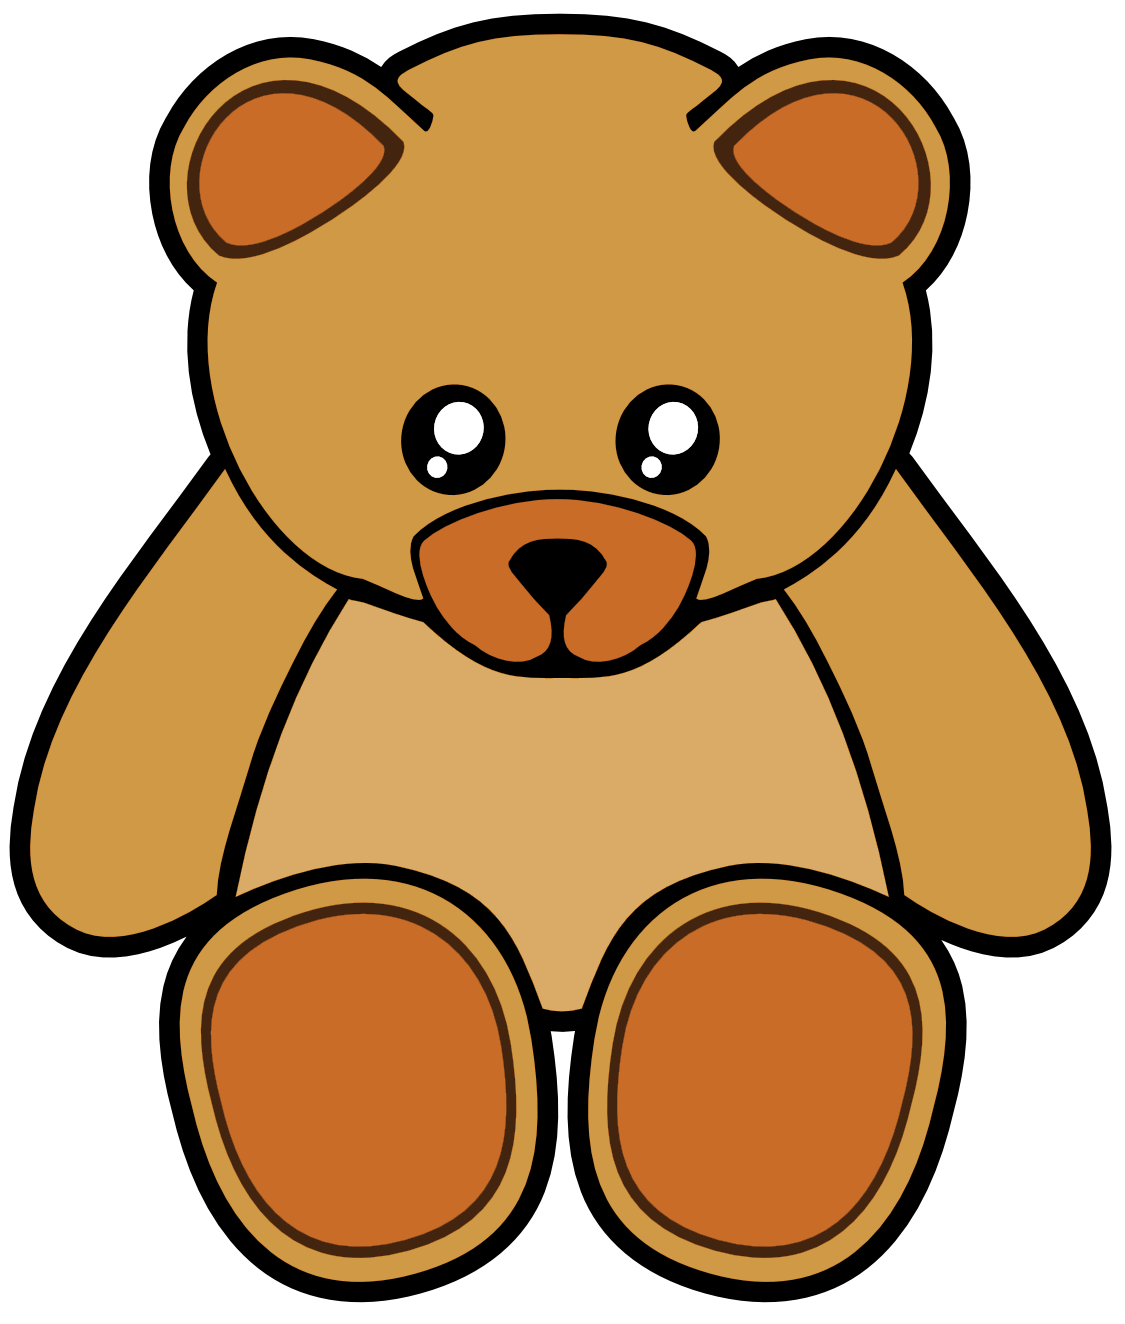 Teddy clipart grizzly bear Clker Brown Free Teddy Image